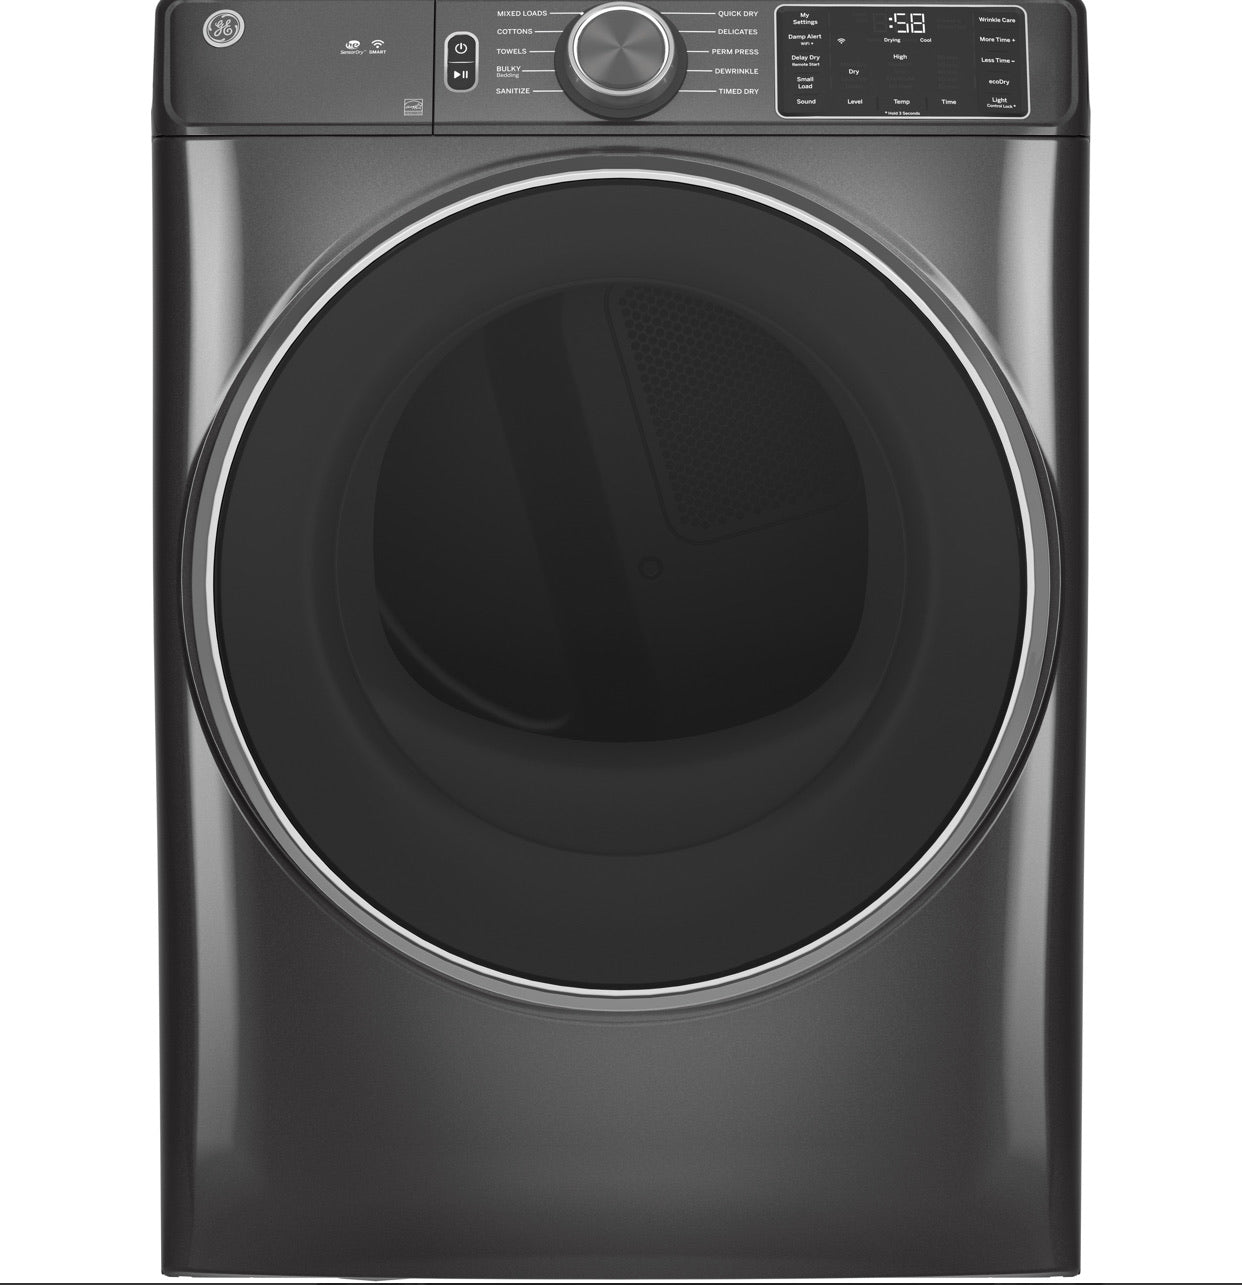 GE® 4.8 CU. FT. CAPACITY SMART FRONT LOAD ENERGY STAR® WASHER WITH ULTRAFRESH VENT SYSTEM WITH ODORBLOCK™ - GFW550SPNDG GE® &  GE 7.8 cu. ft. Capacity Smart Front Load Gas Dryer GFD55GSPNDG